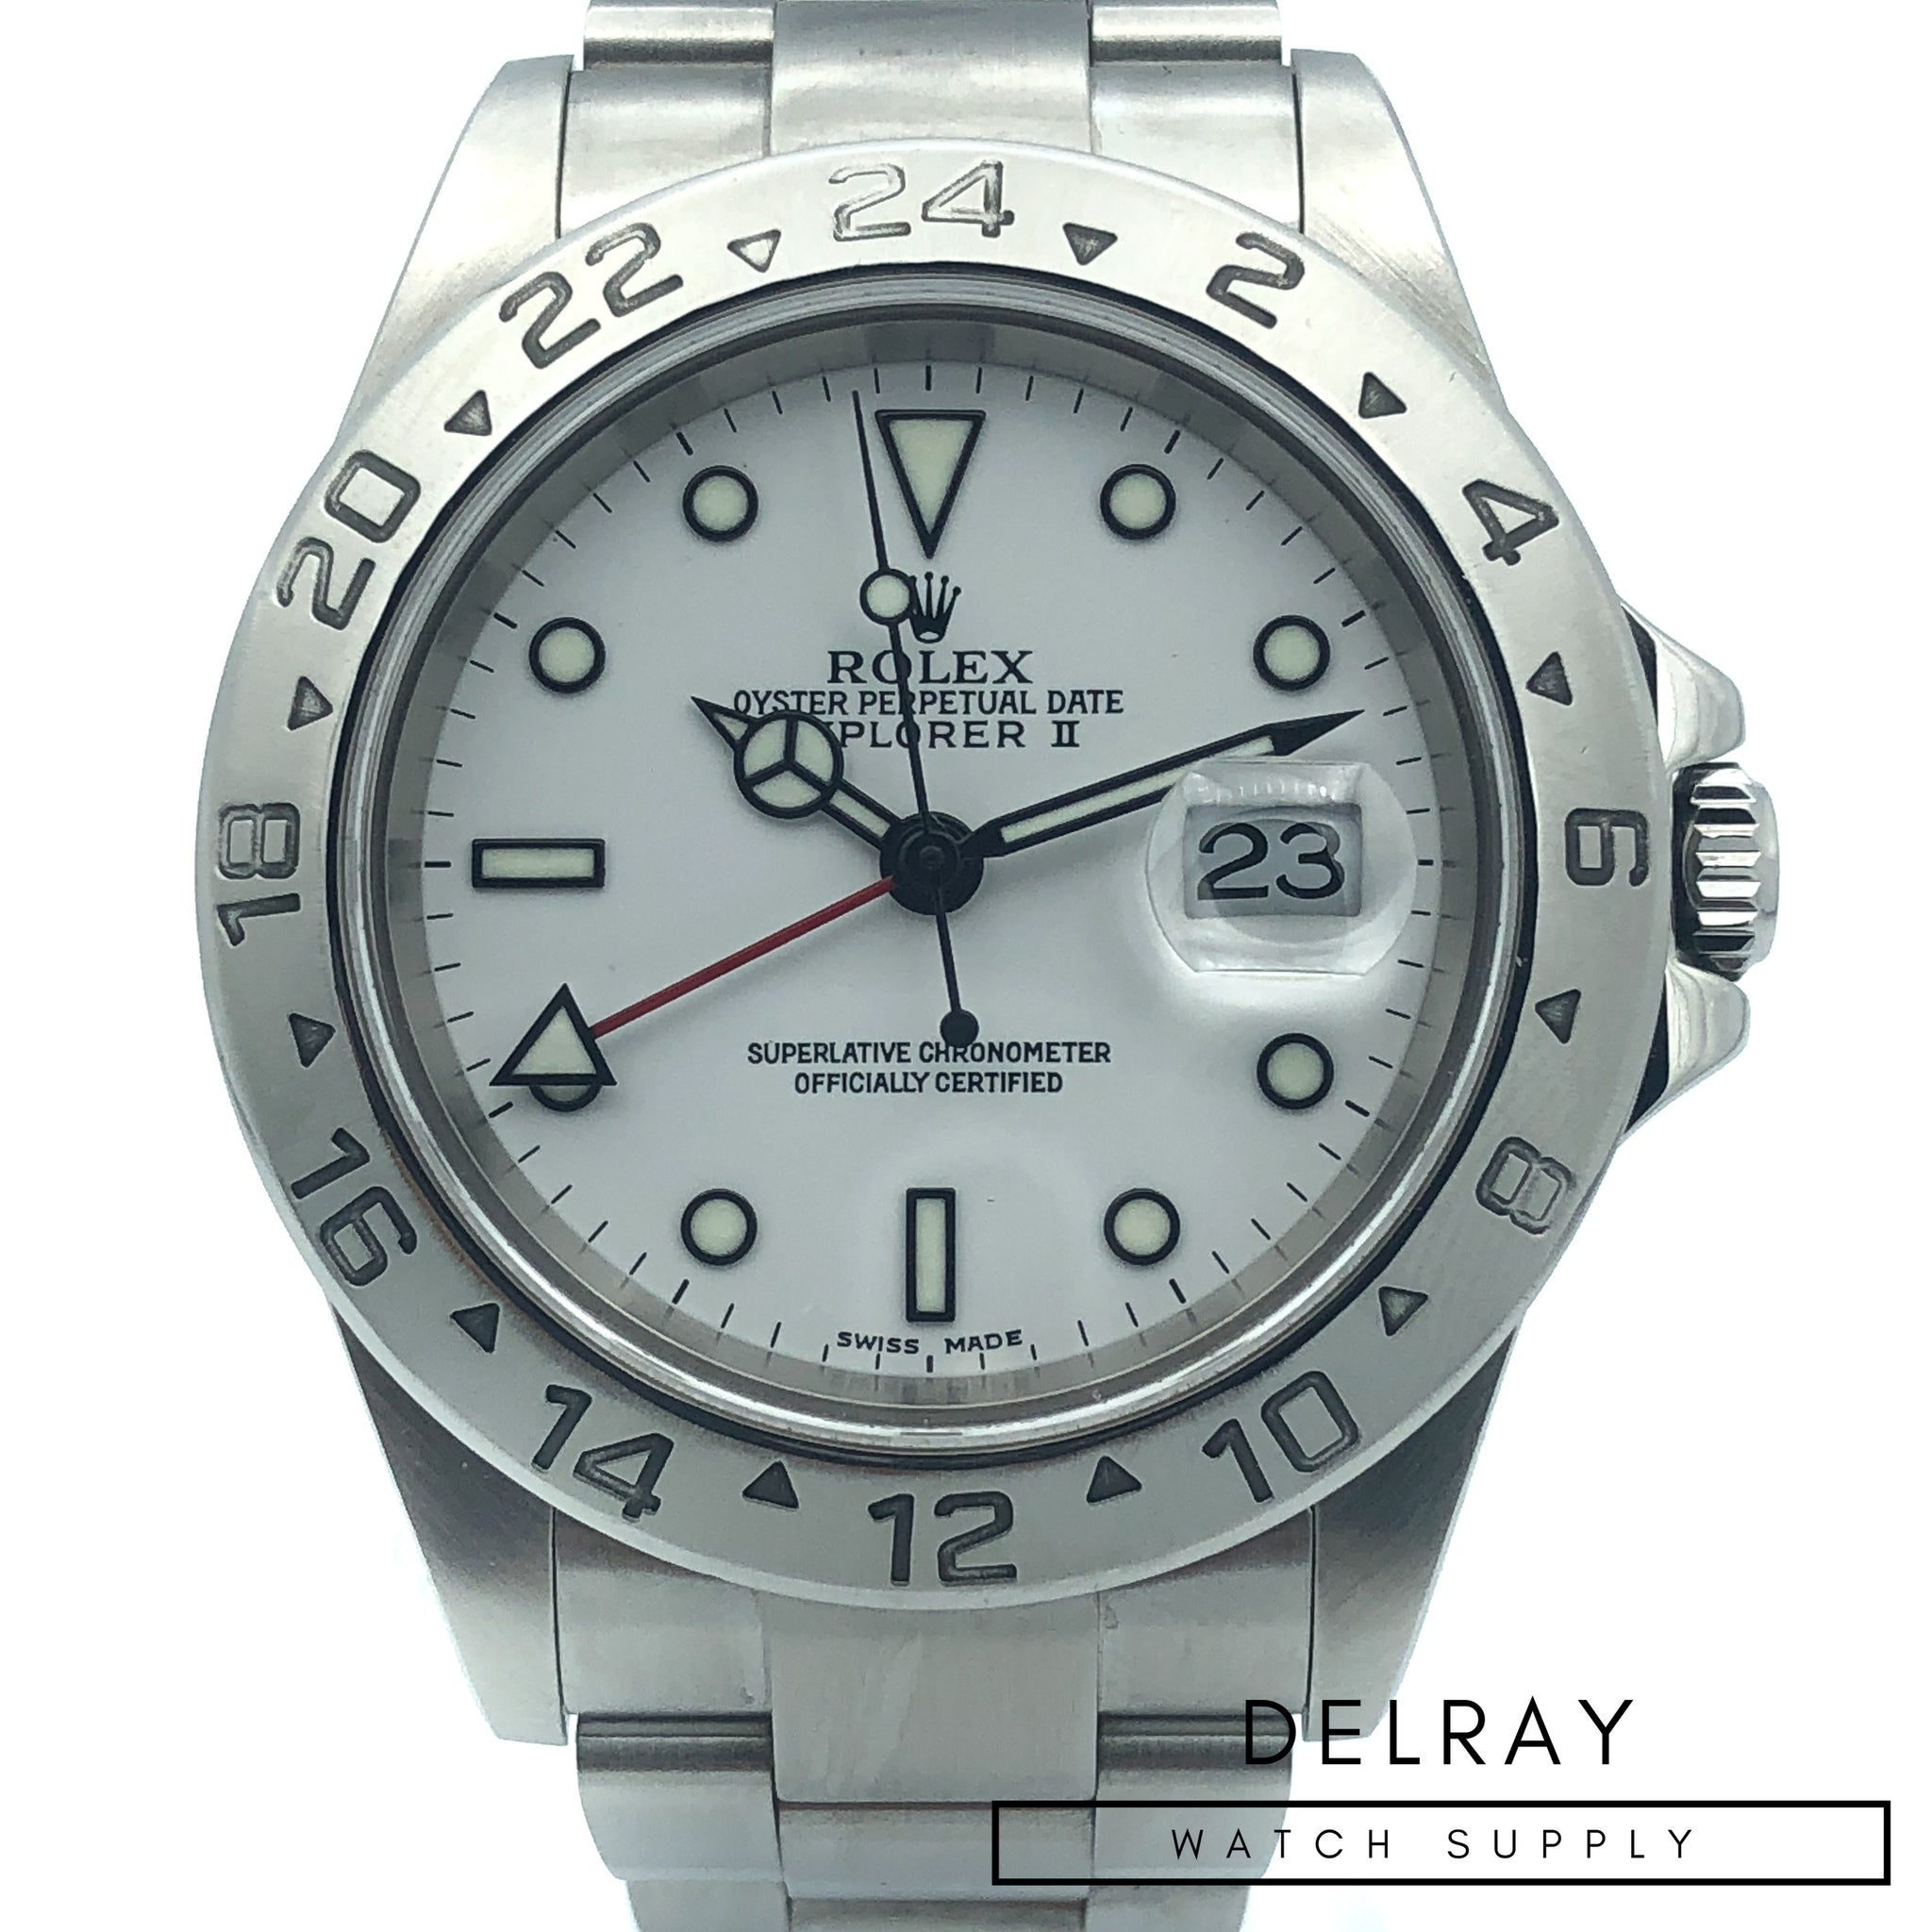 military start the vintage sold watches slideshow slideshowstop explorer product rolex